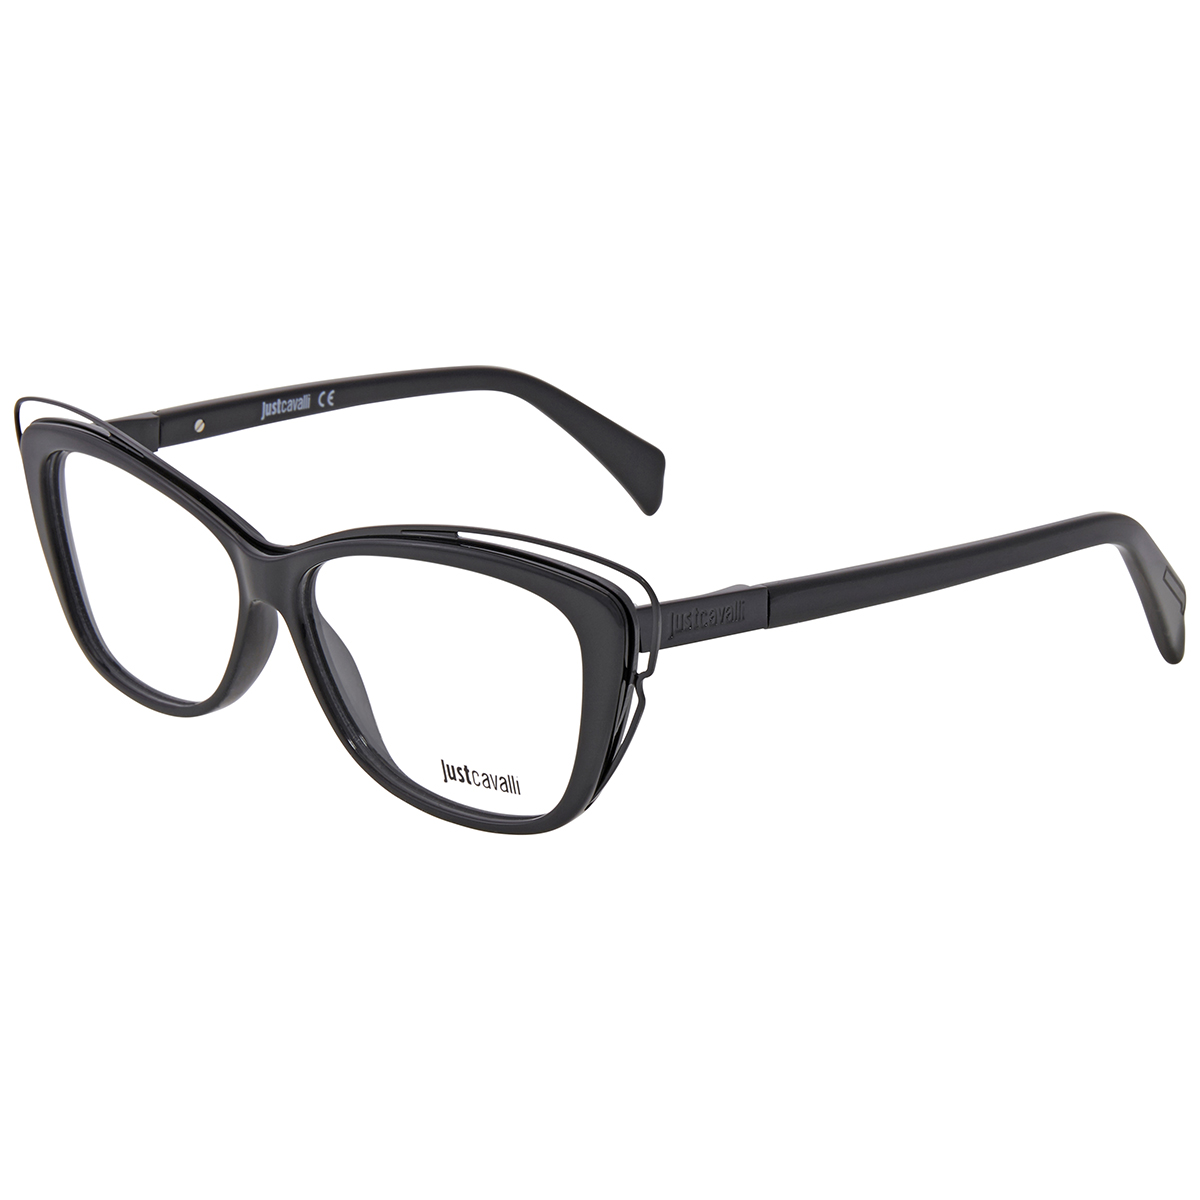 Just Cavalli Ladies Black Cat Eye Eyeglass Frames Jc070400155